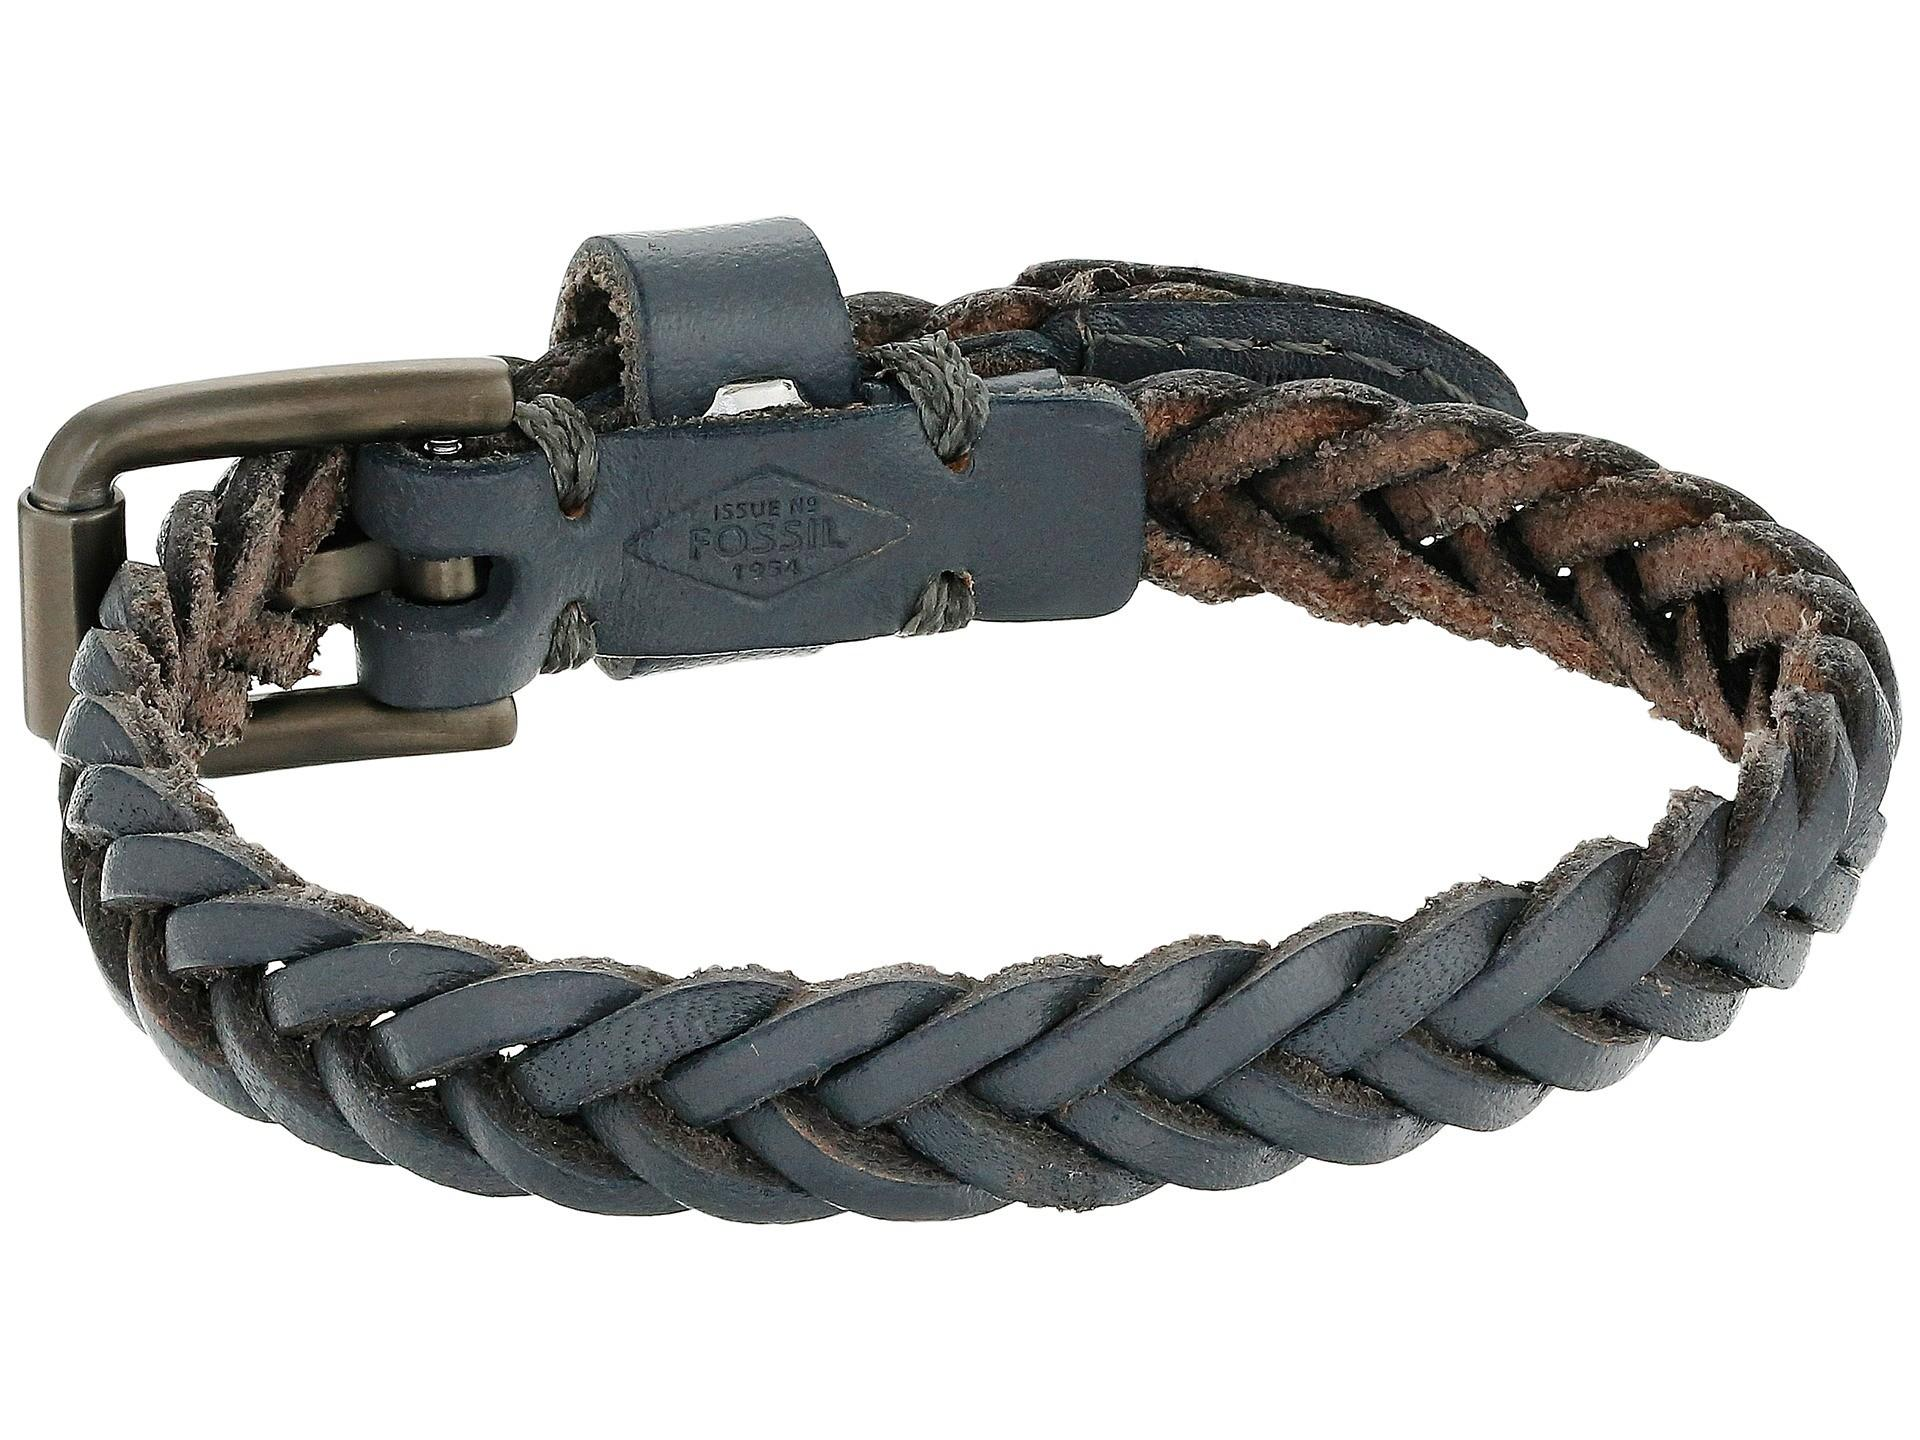 Fossil Vintage Casual Braided Leather Bracelet Gray